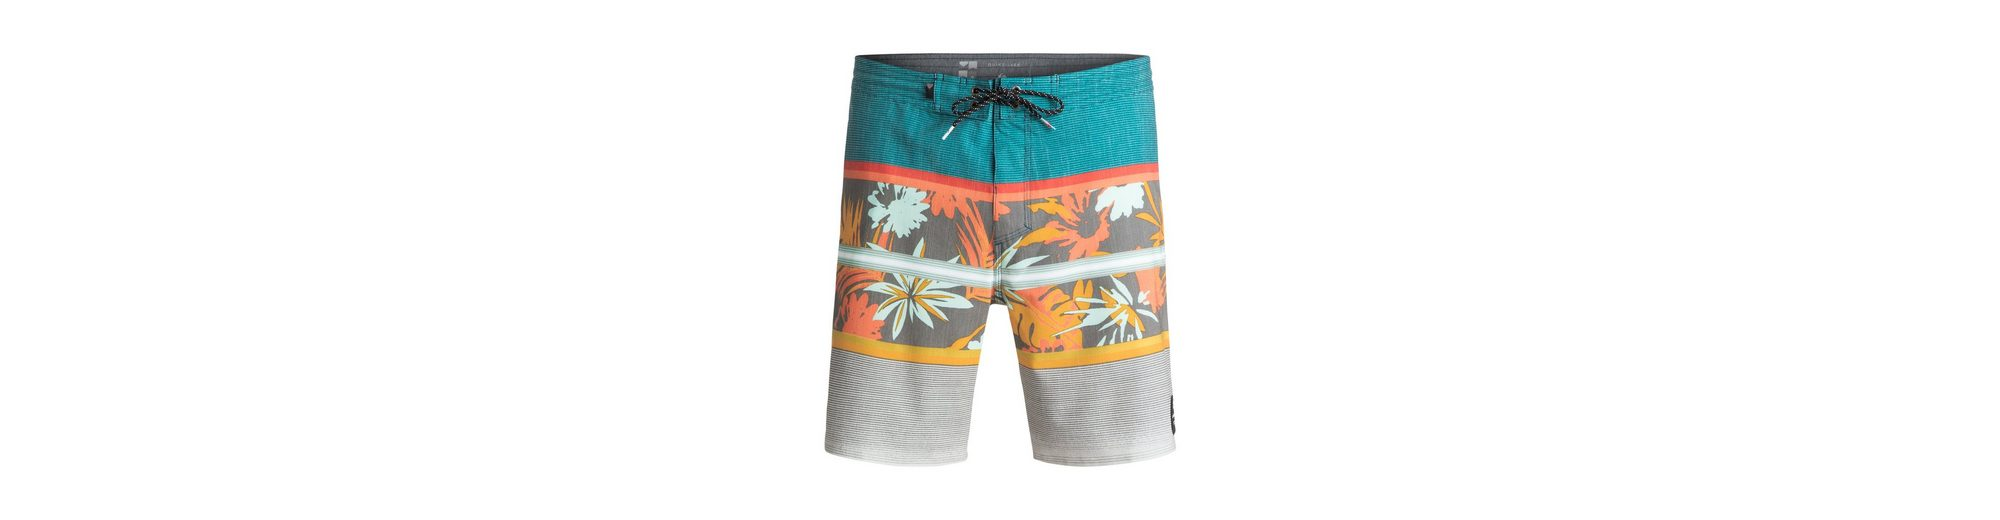 Quiksilver Beachshorts Swell Vision 18